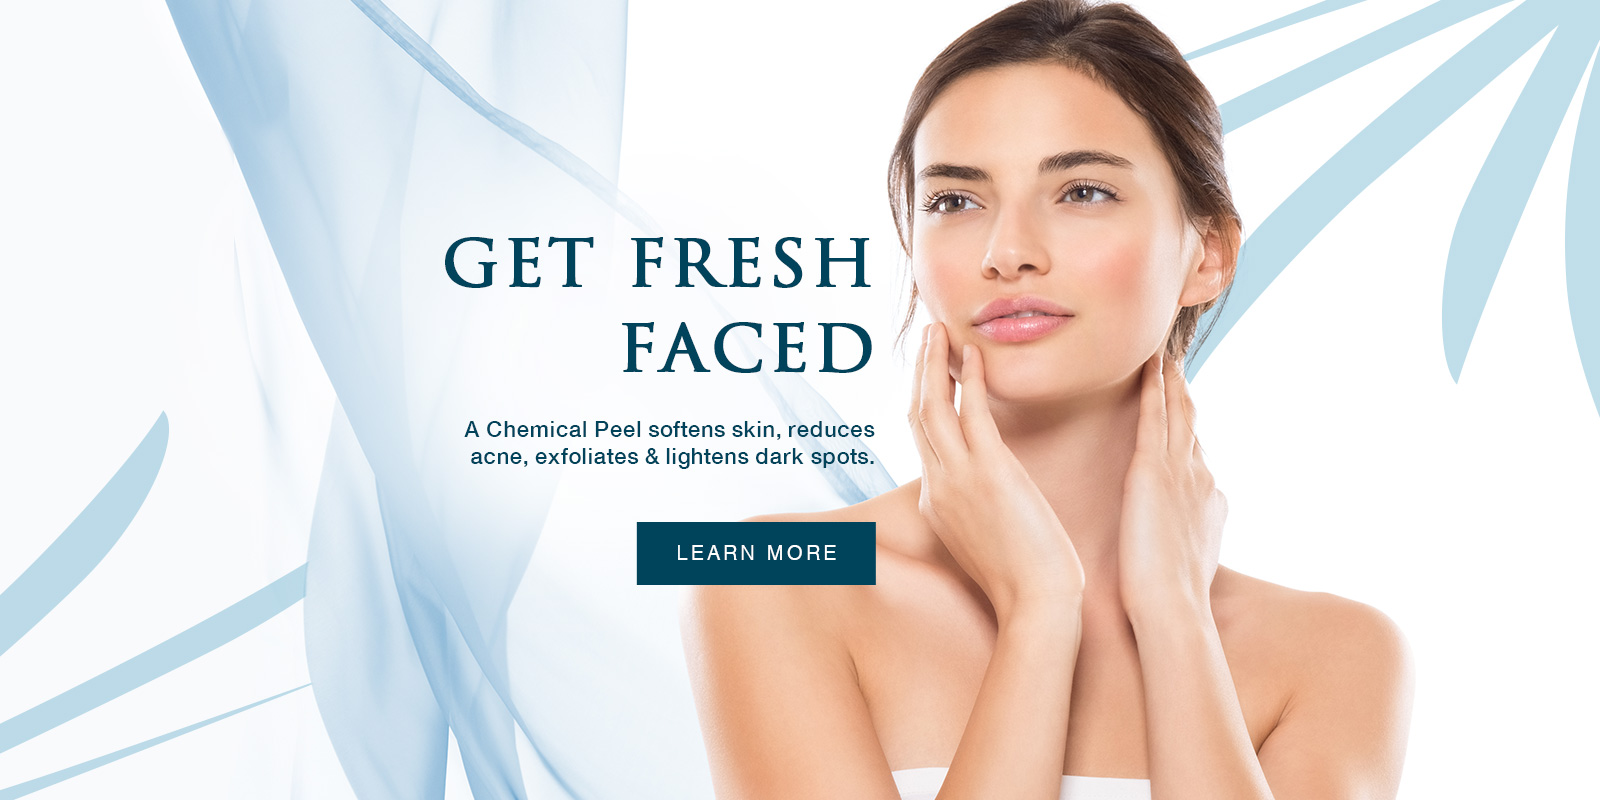 Get fresh faced